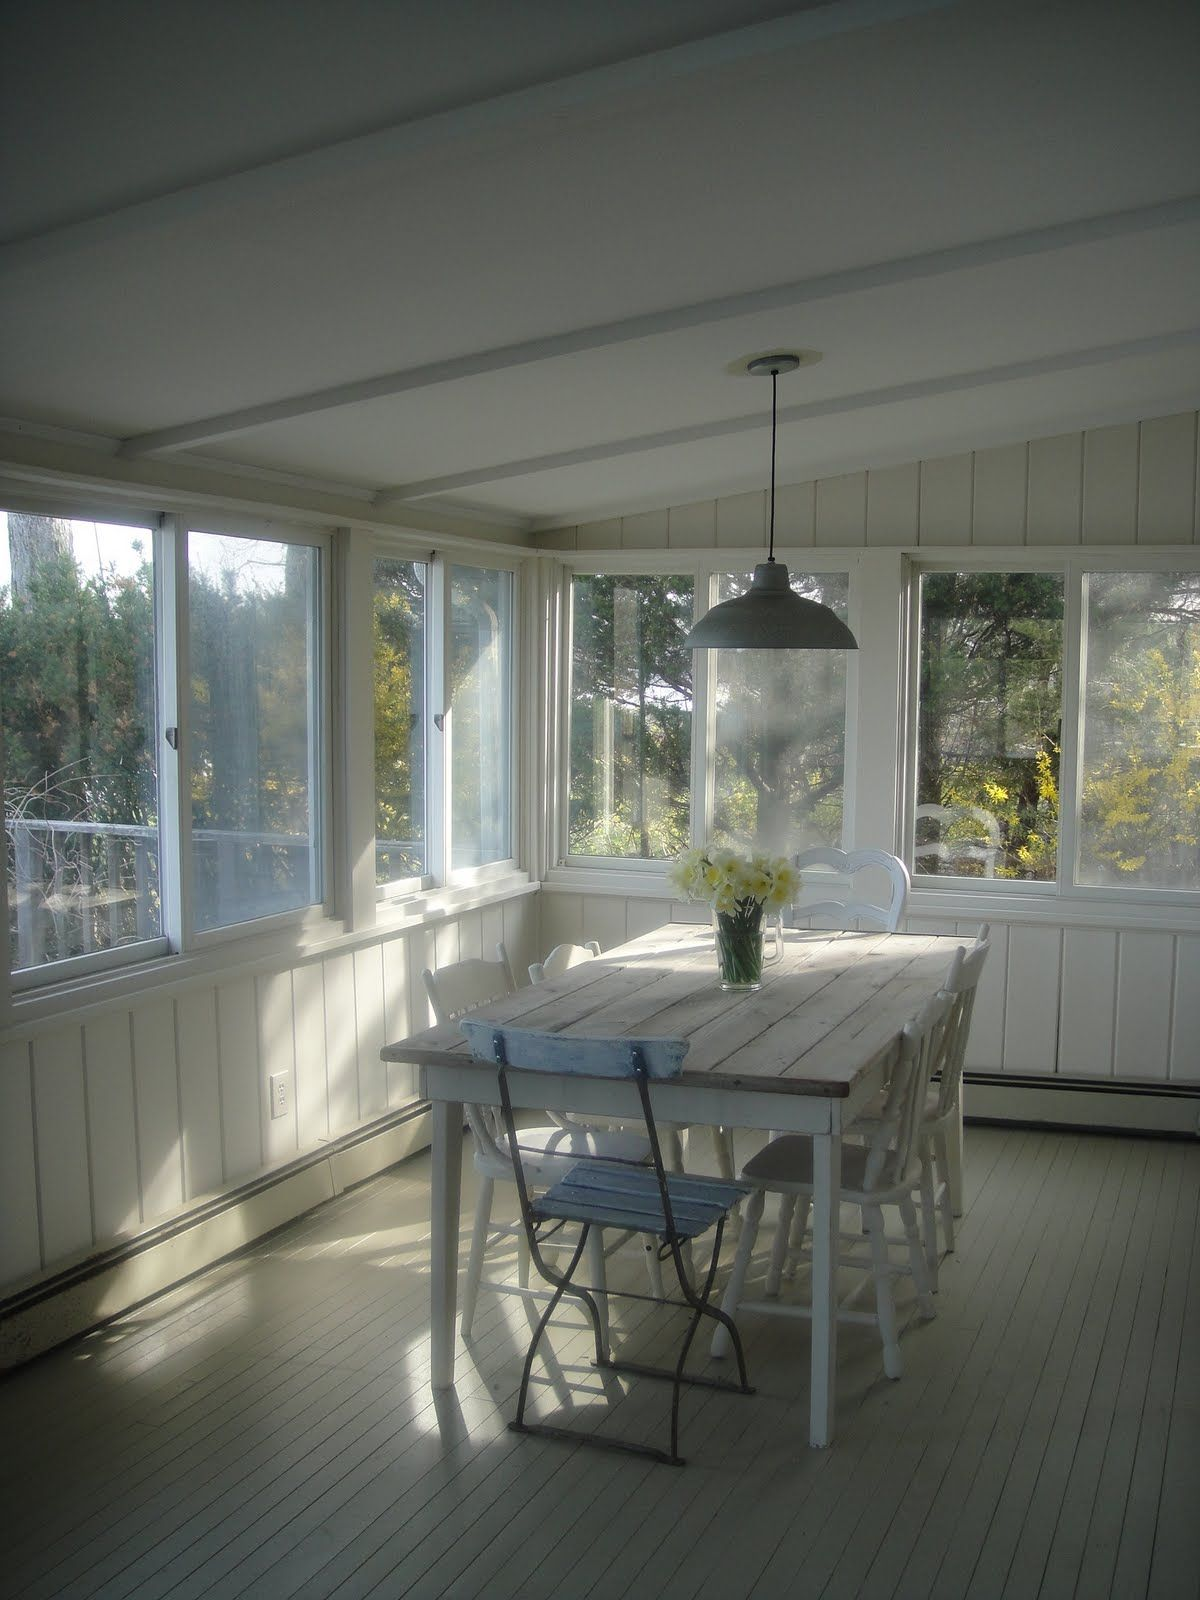 my most favorite kind of enclosed porch...windows spanning the whole length and width. i would buy a sub par house if it had a porch like this.